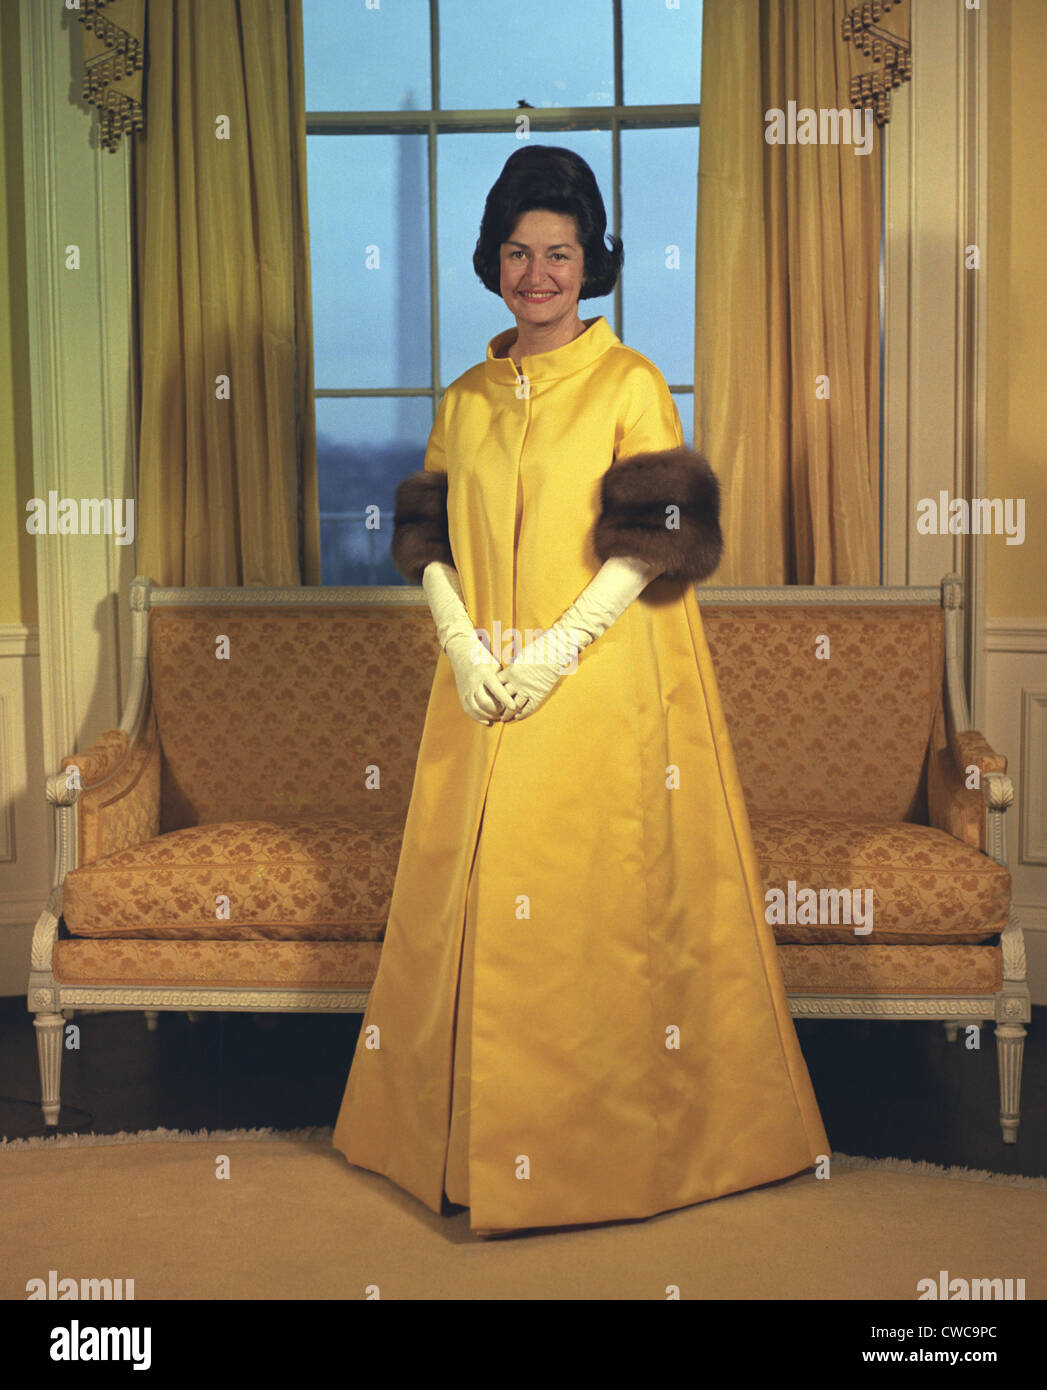 Lady Bird Johnson\'s Inaugural Gown. The First Lady wore canary ...